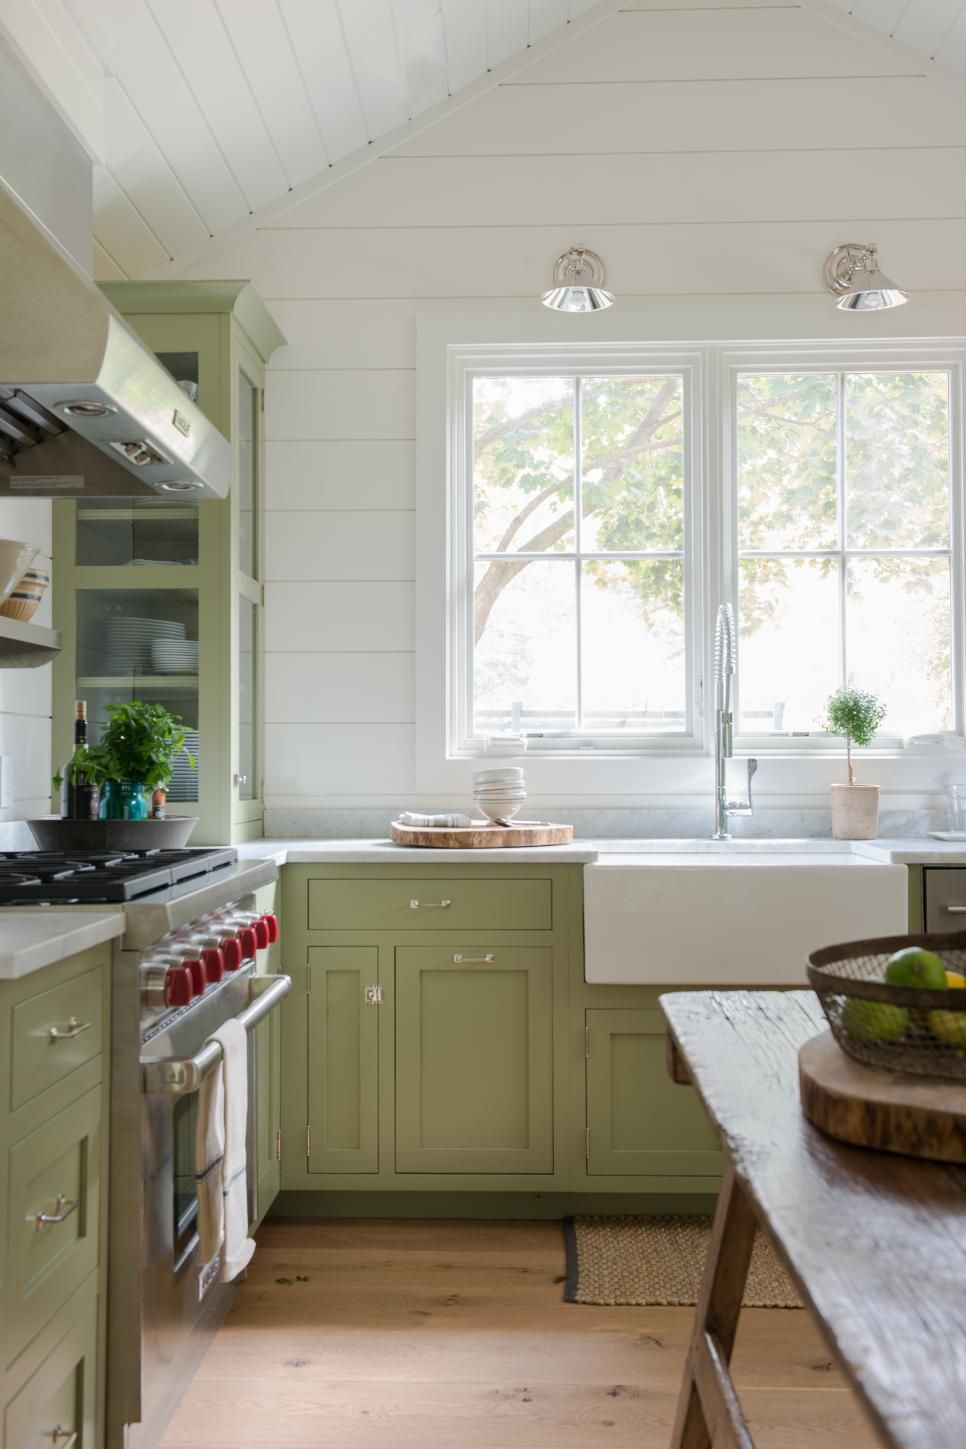 Rooms viewer hgtv tiny houses pinterest kitchen house and home